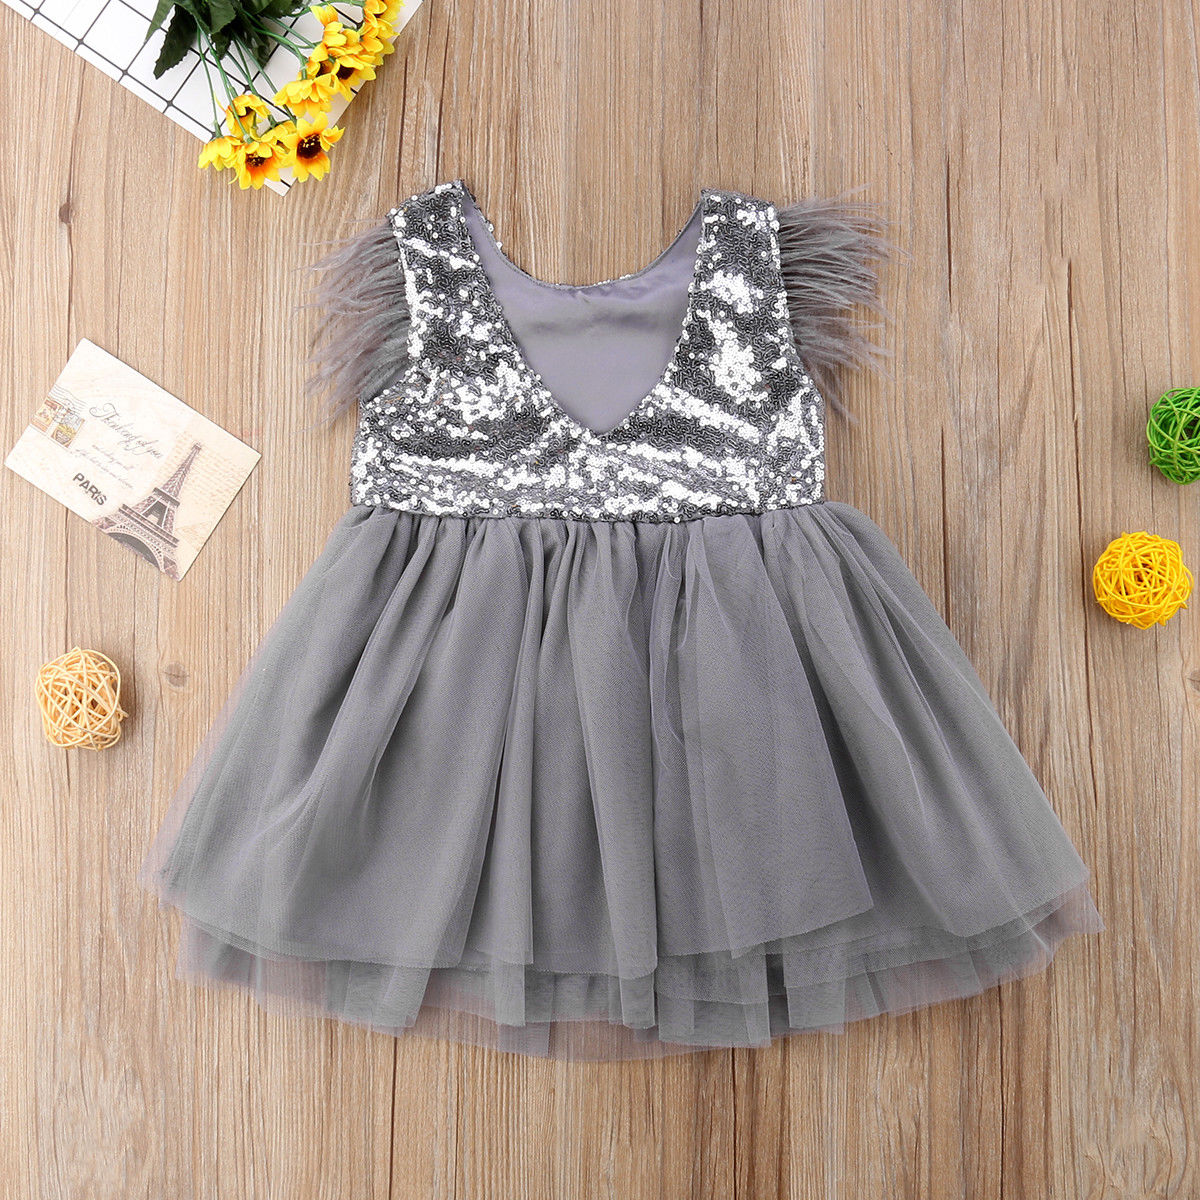 Classic Toddler Kids Baby Girl Short Sleeve Floral Deer Princess Pageant Dresses